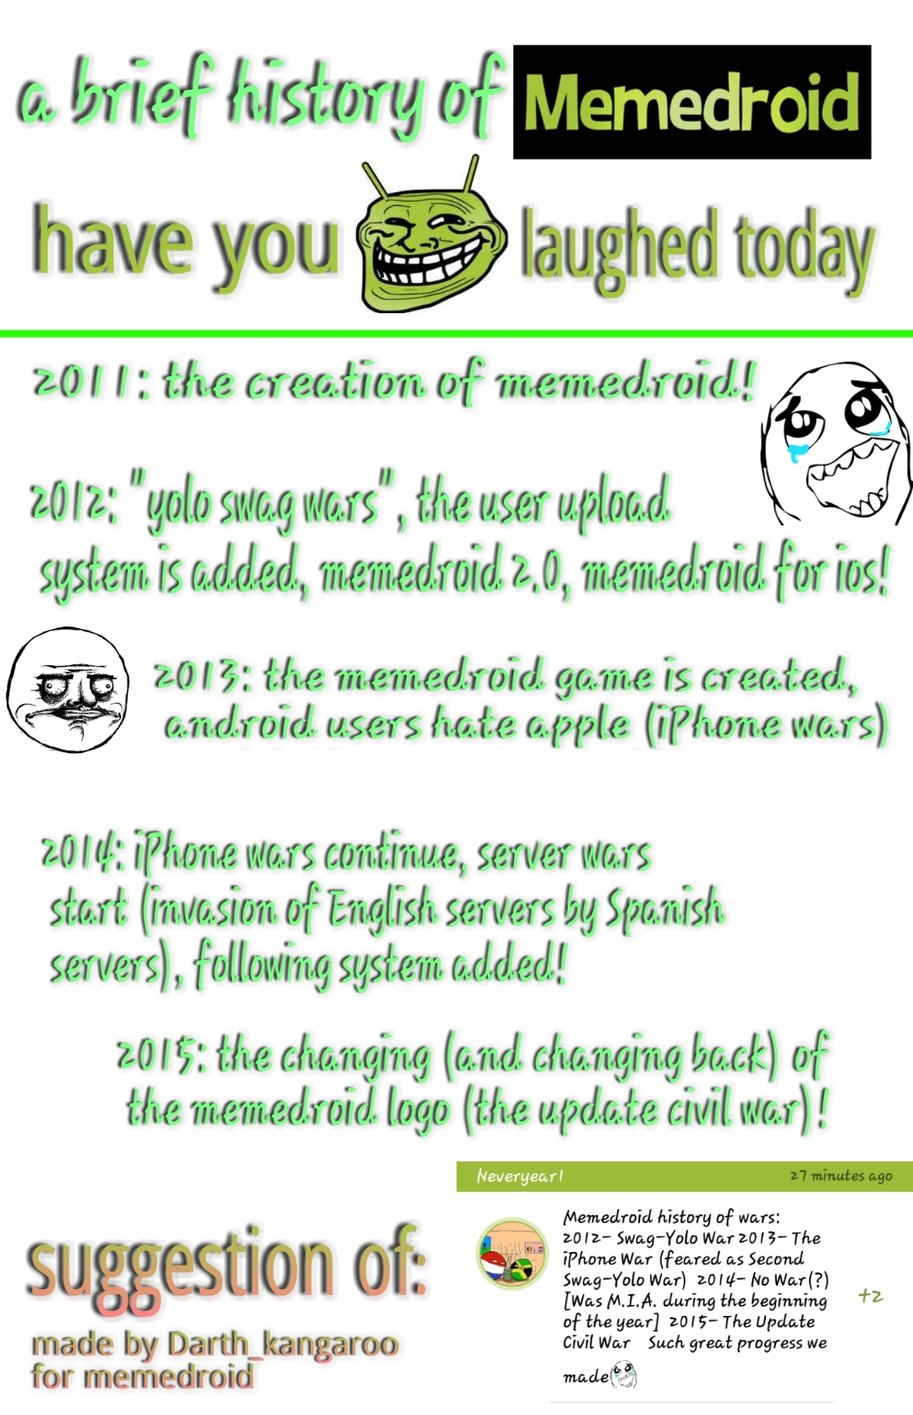 A history of memedroid. More originals coming soon. And ps im very sorry if any information is off, i had to do most from memory and it might not be the best so if anything is wrong i apologize